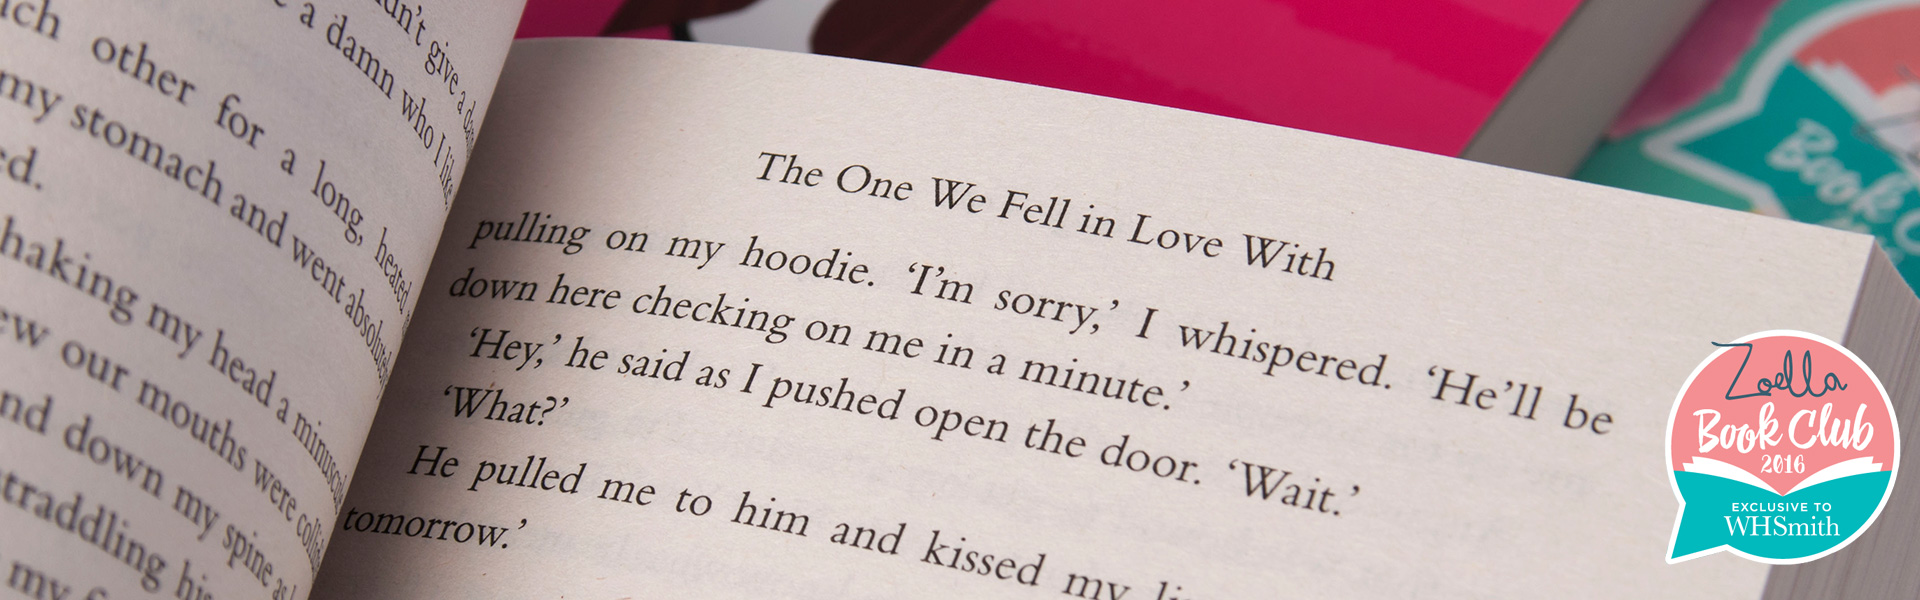 Read an Extract from The One We Fell in Love With by Paige Toon